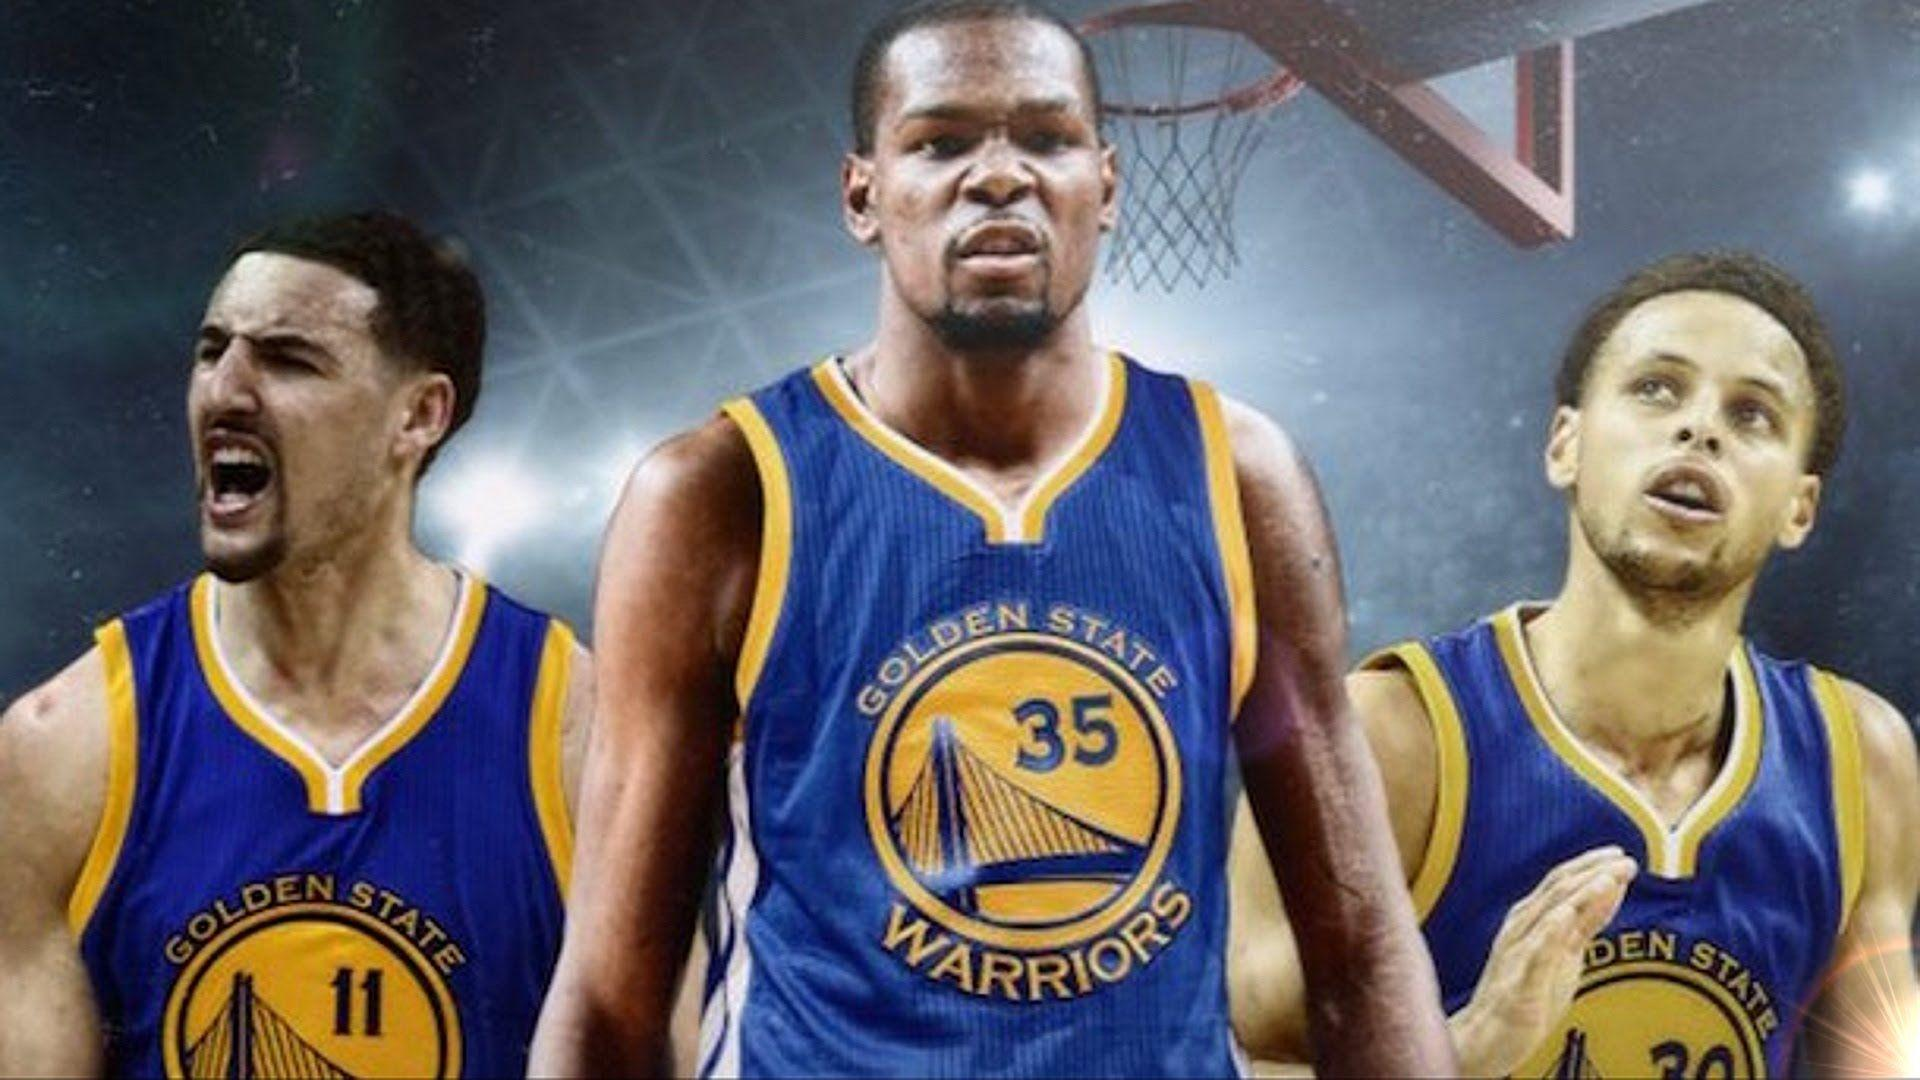 KEVIN DURANT & STEPHEN CURRY RESPOND TO KEVIN DURANT JOINING THE